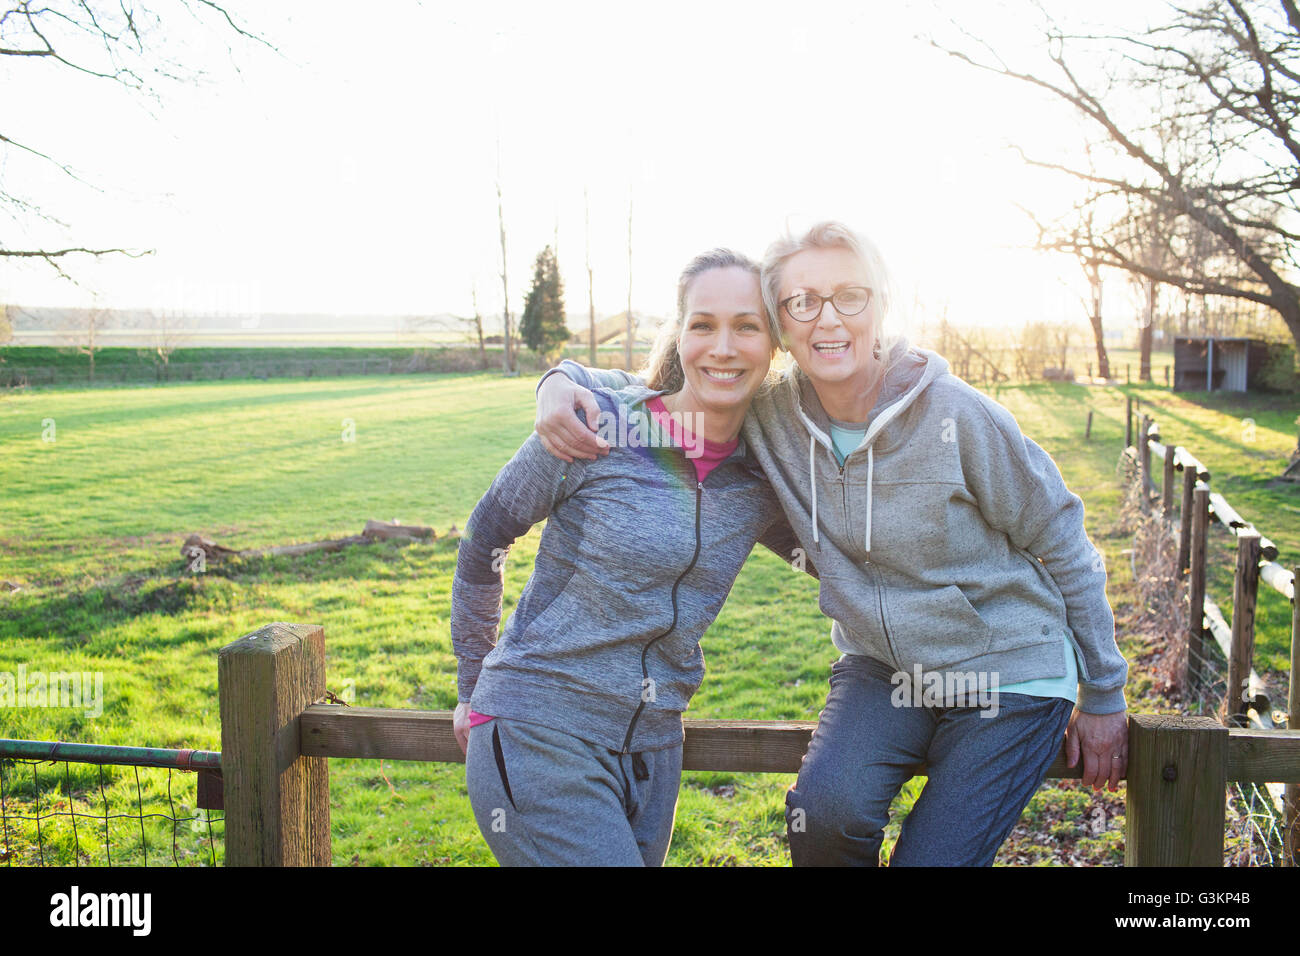 Women wearing sports clothing leaning against fence looking at camera hugging and smiling Stock Photo